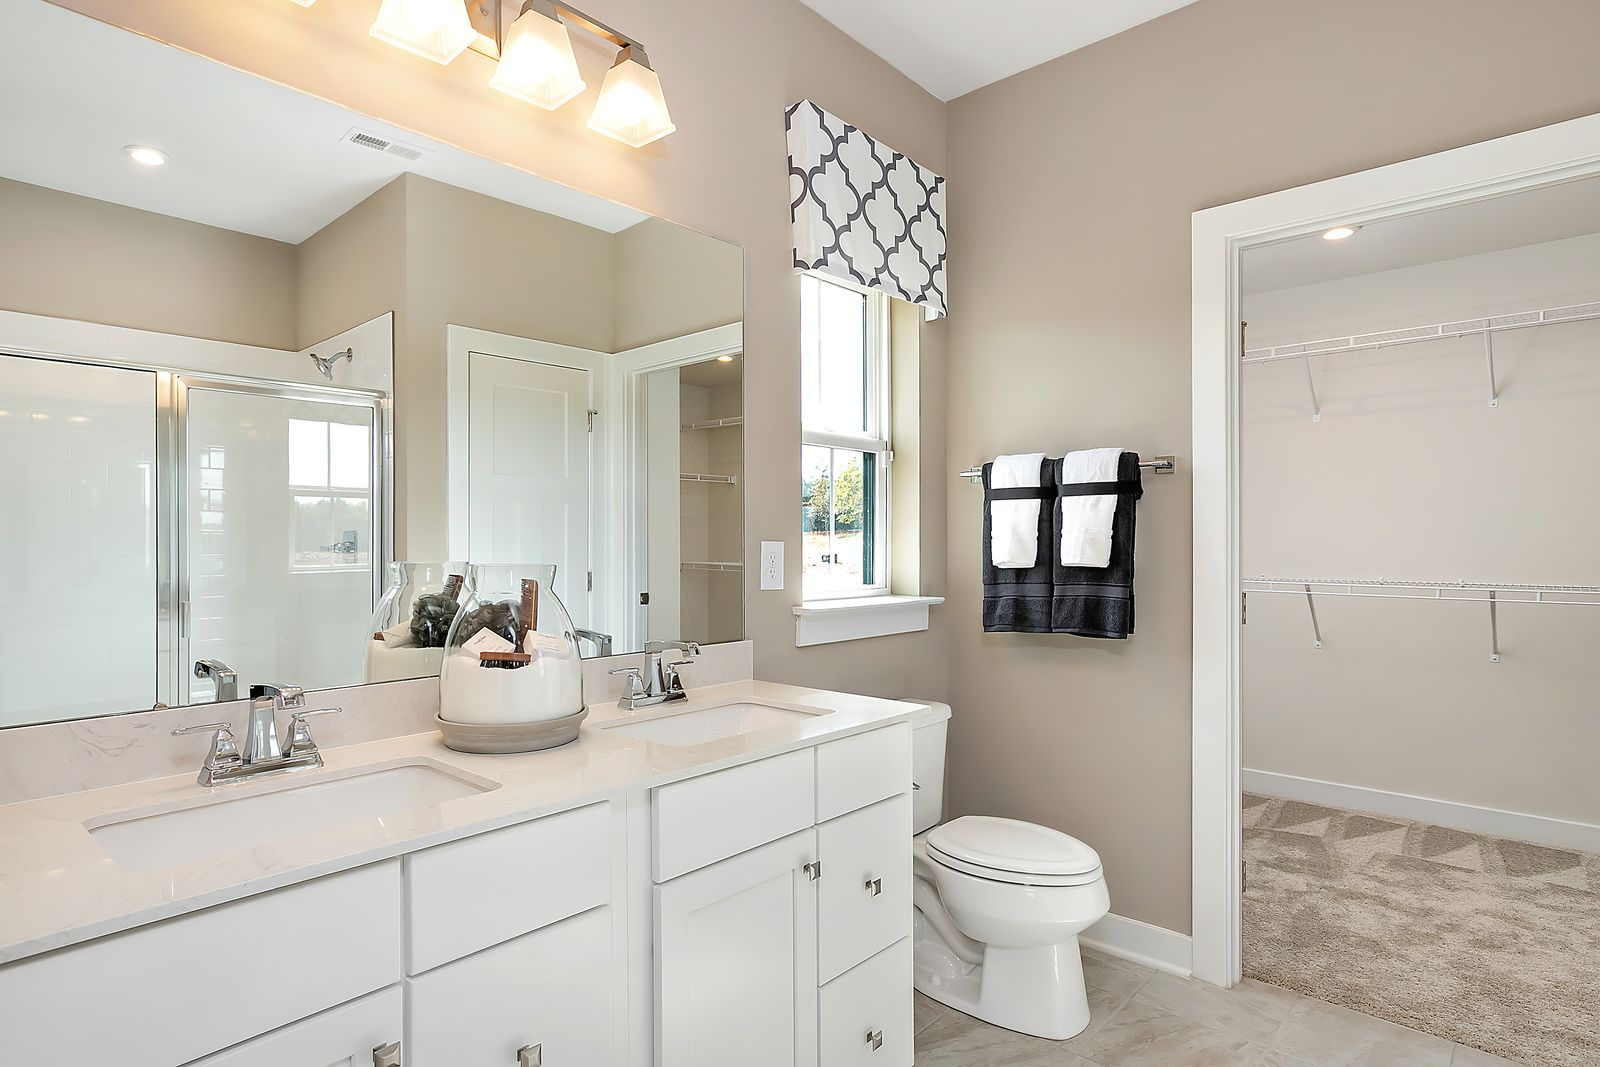 Bathroom featured in the Bramante 2 Story Slab - Basement Available By Ryan Homes in Chicago, IL